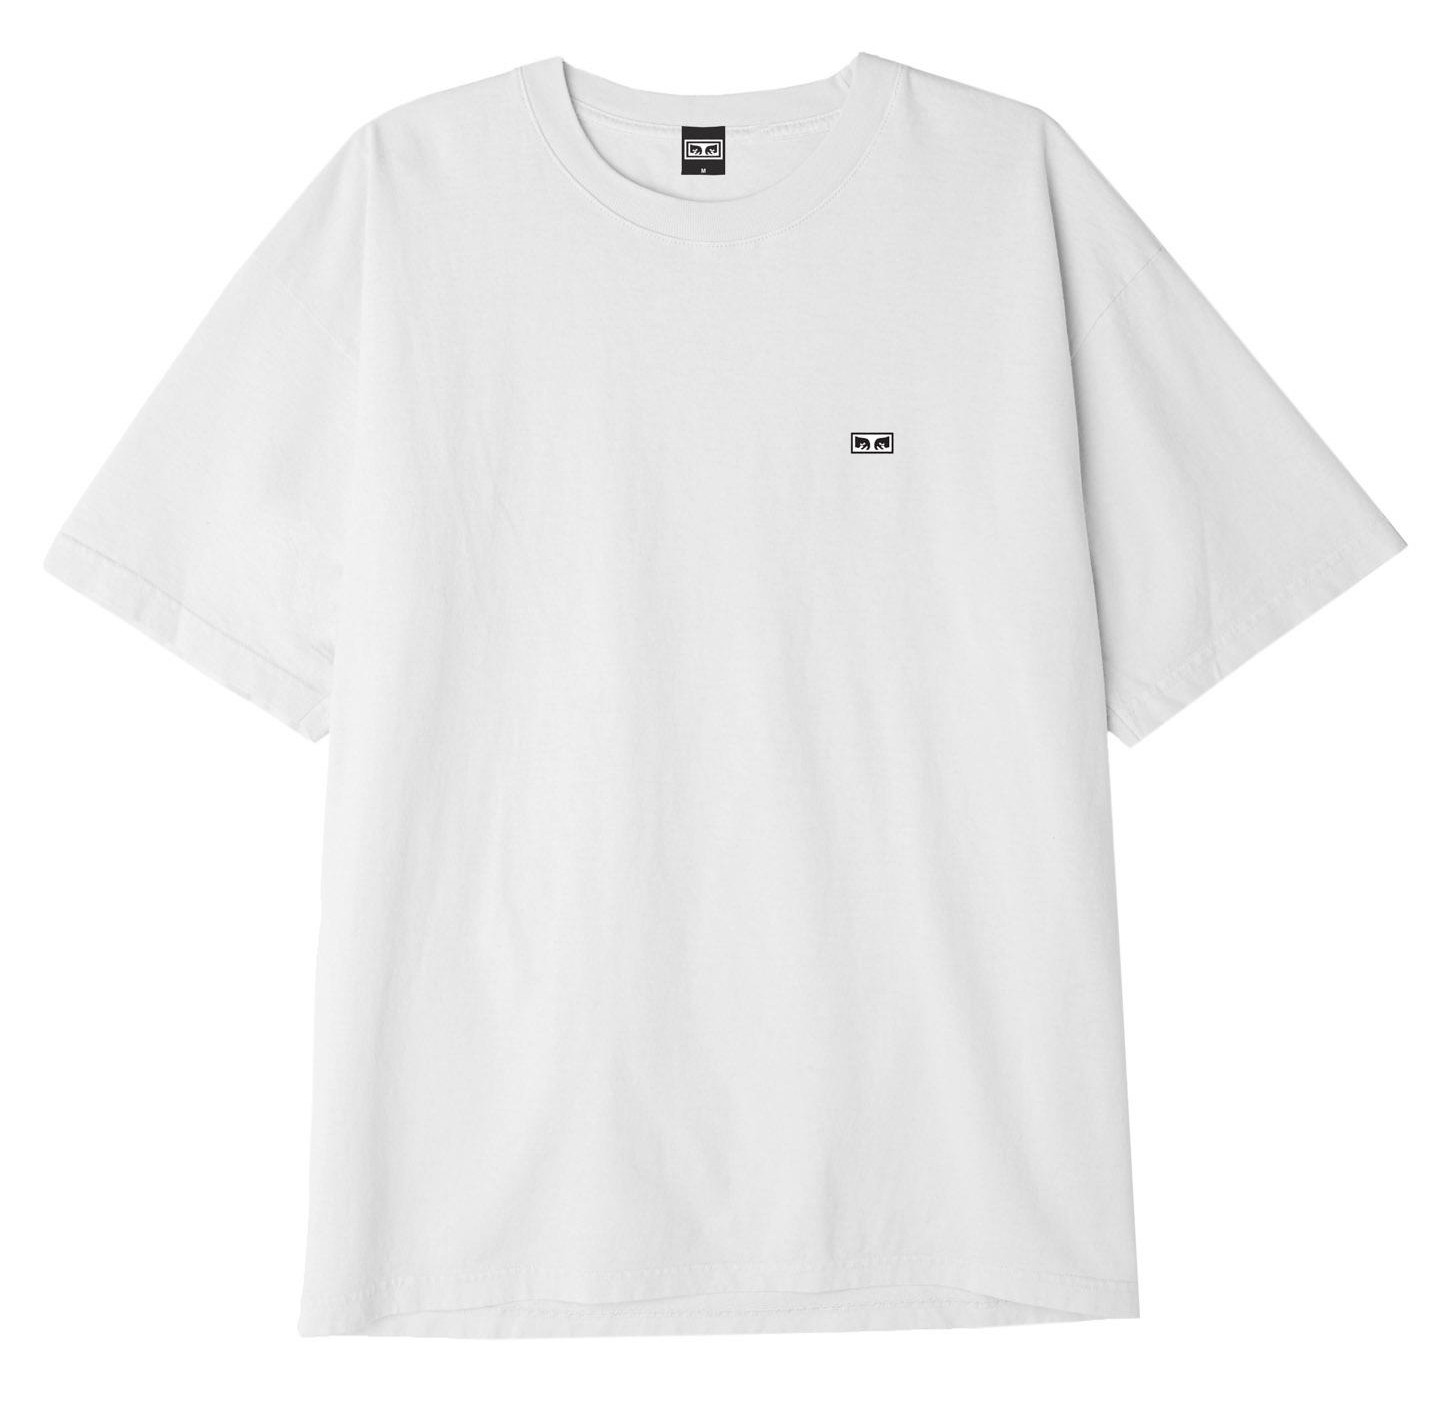 OBEY EYES OF OBEY T-SHIRT - WHITE